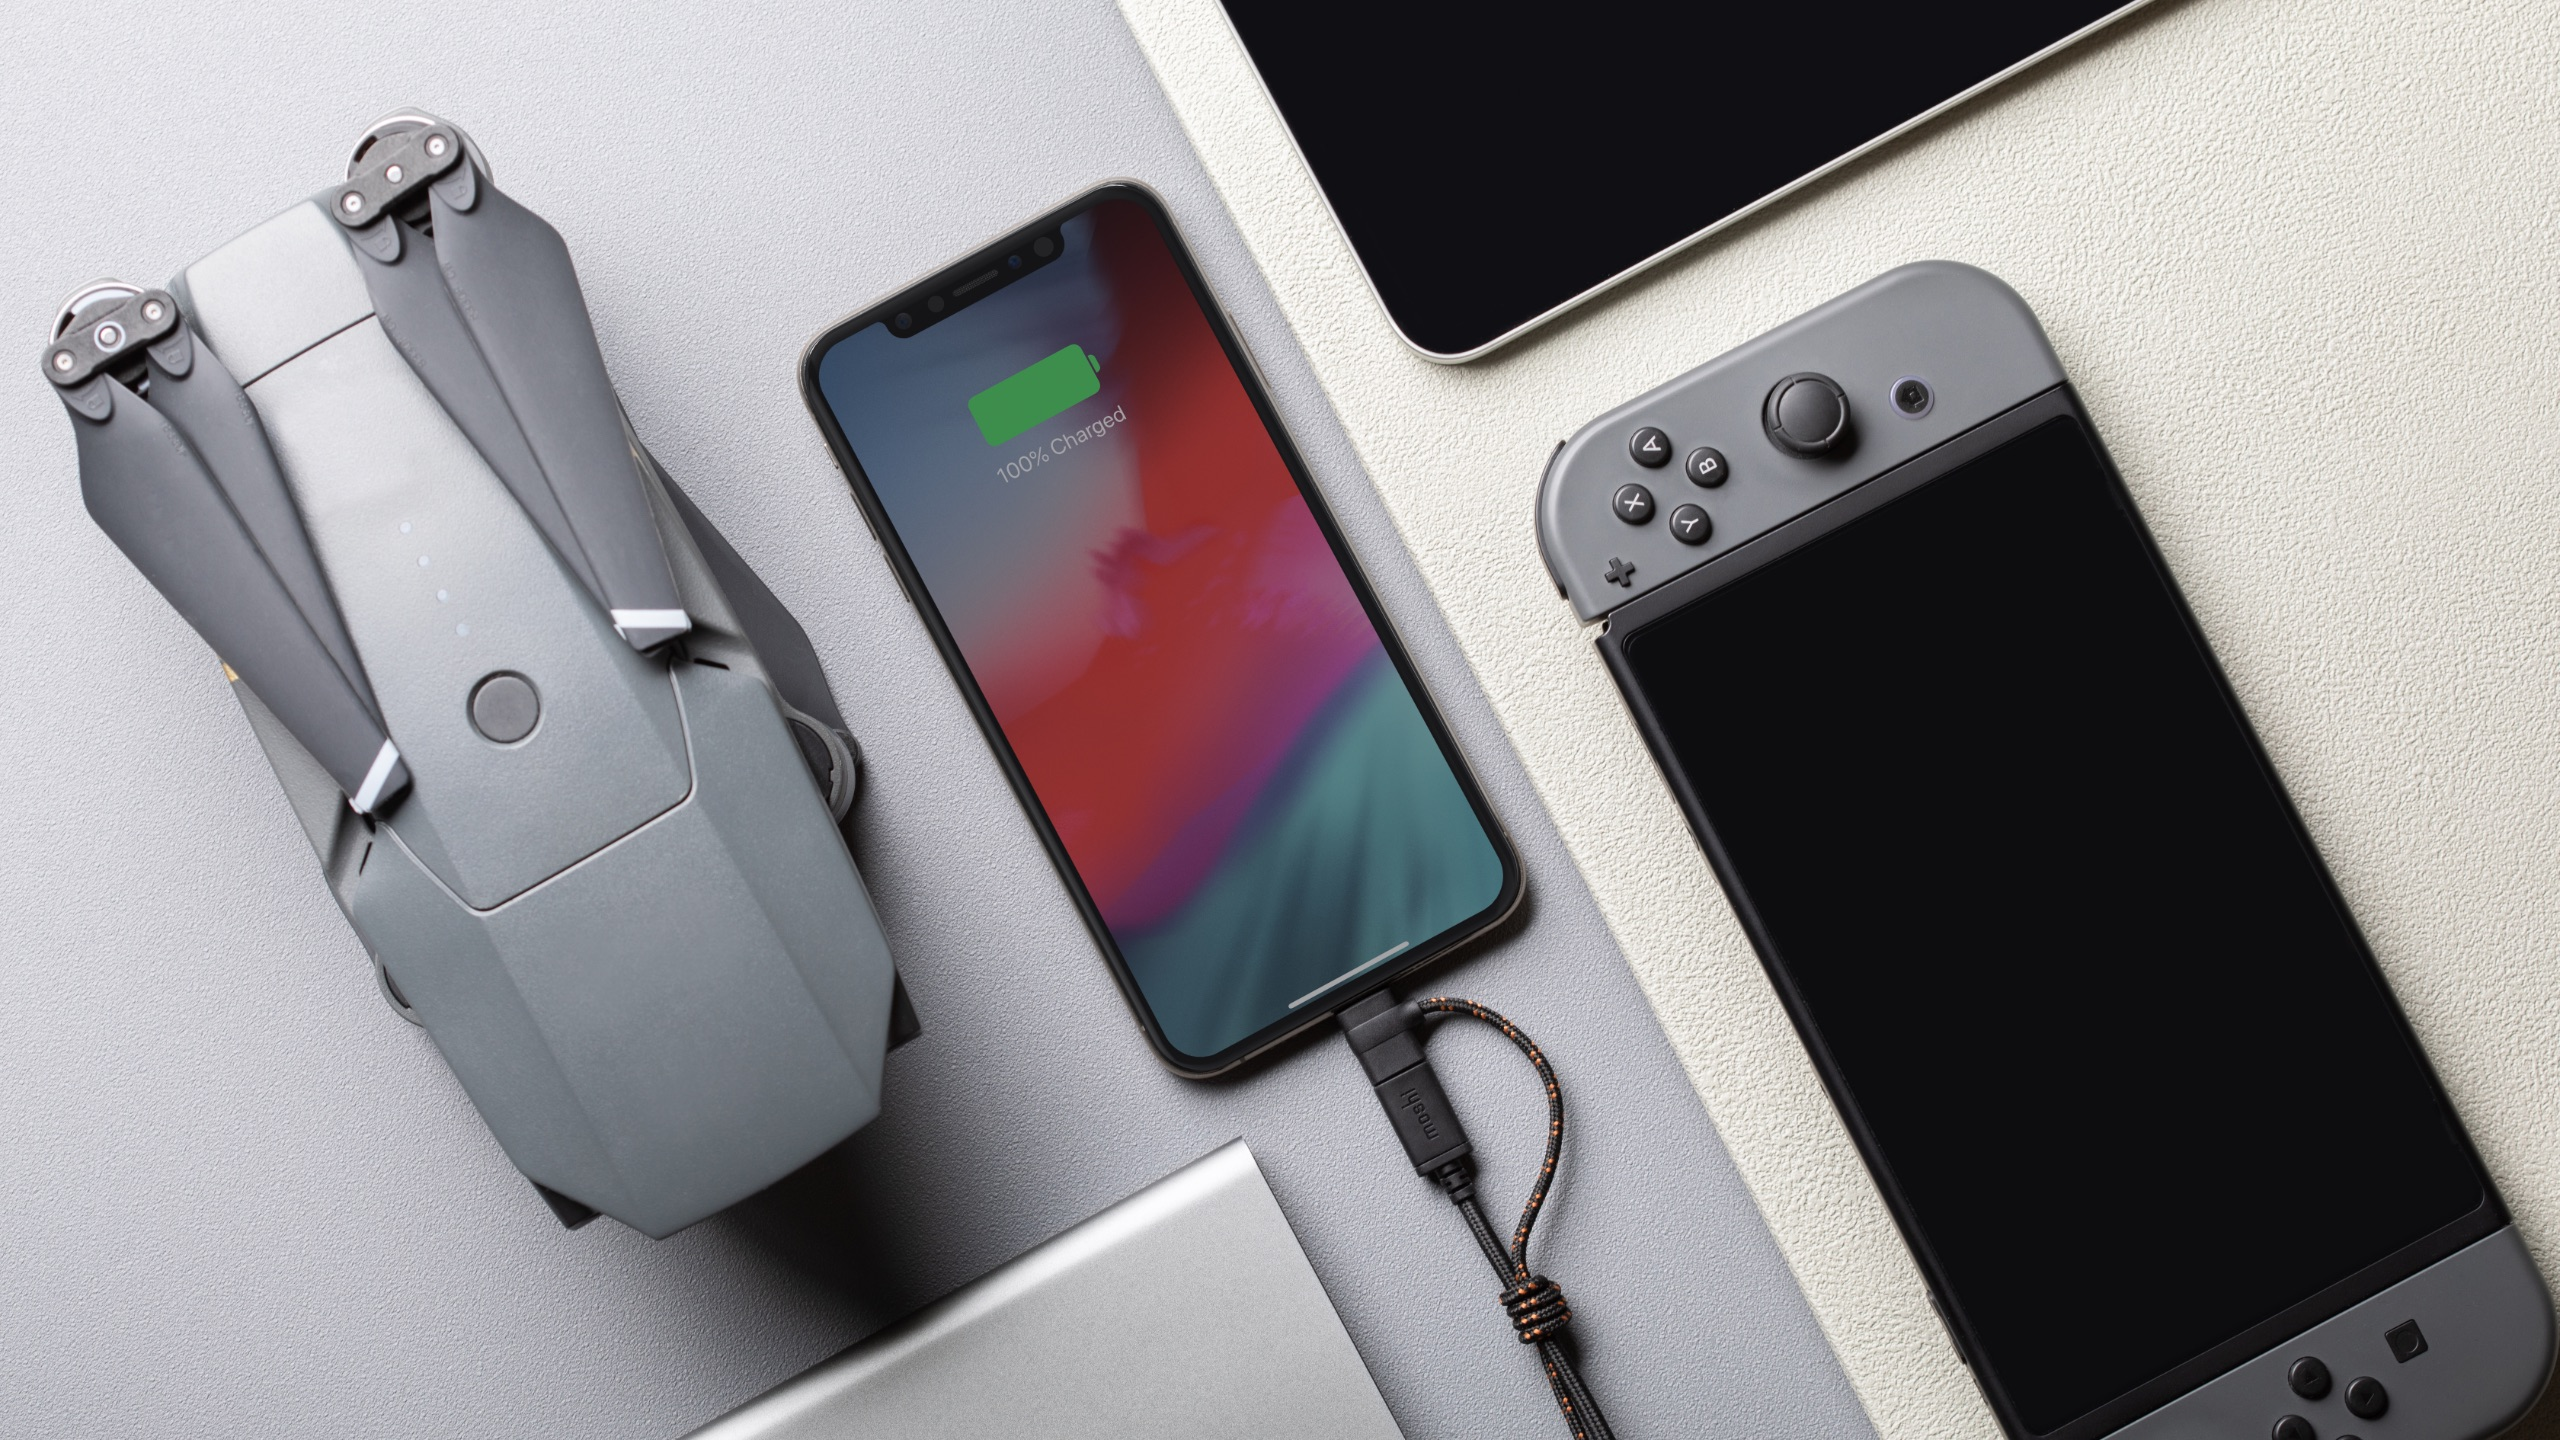 3-in-1 Universal Charging Cable-image